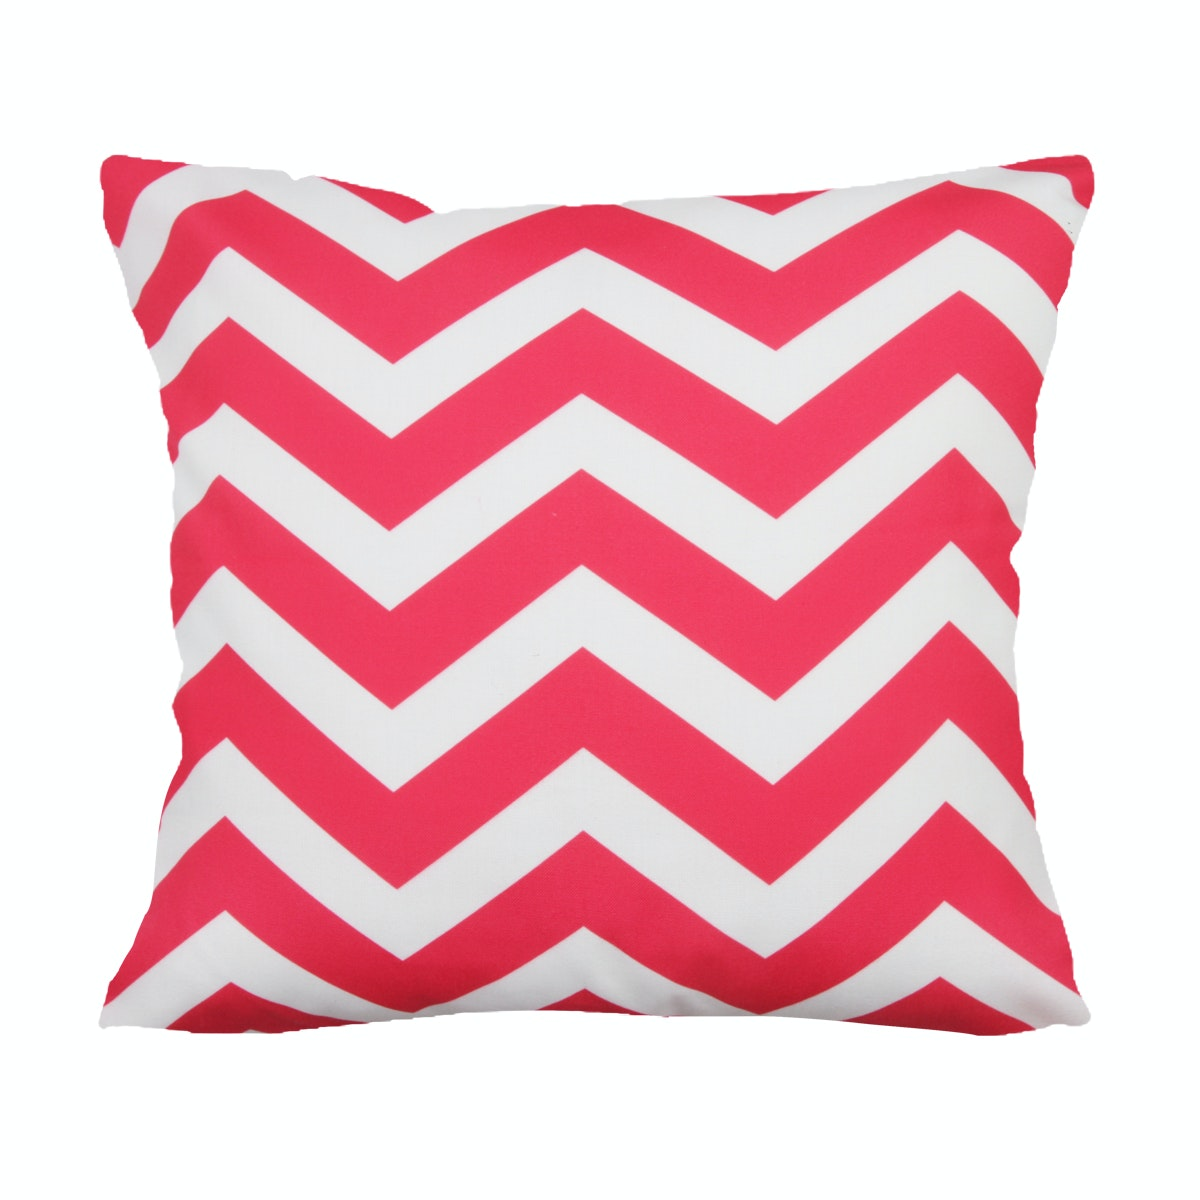 Le Atelier Tribal Pink Cushion Cover